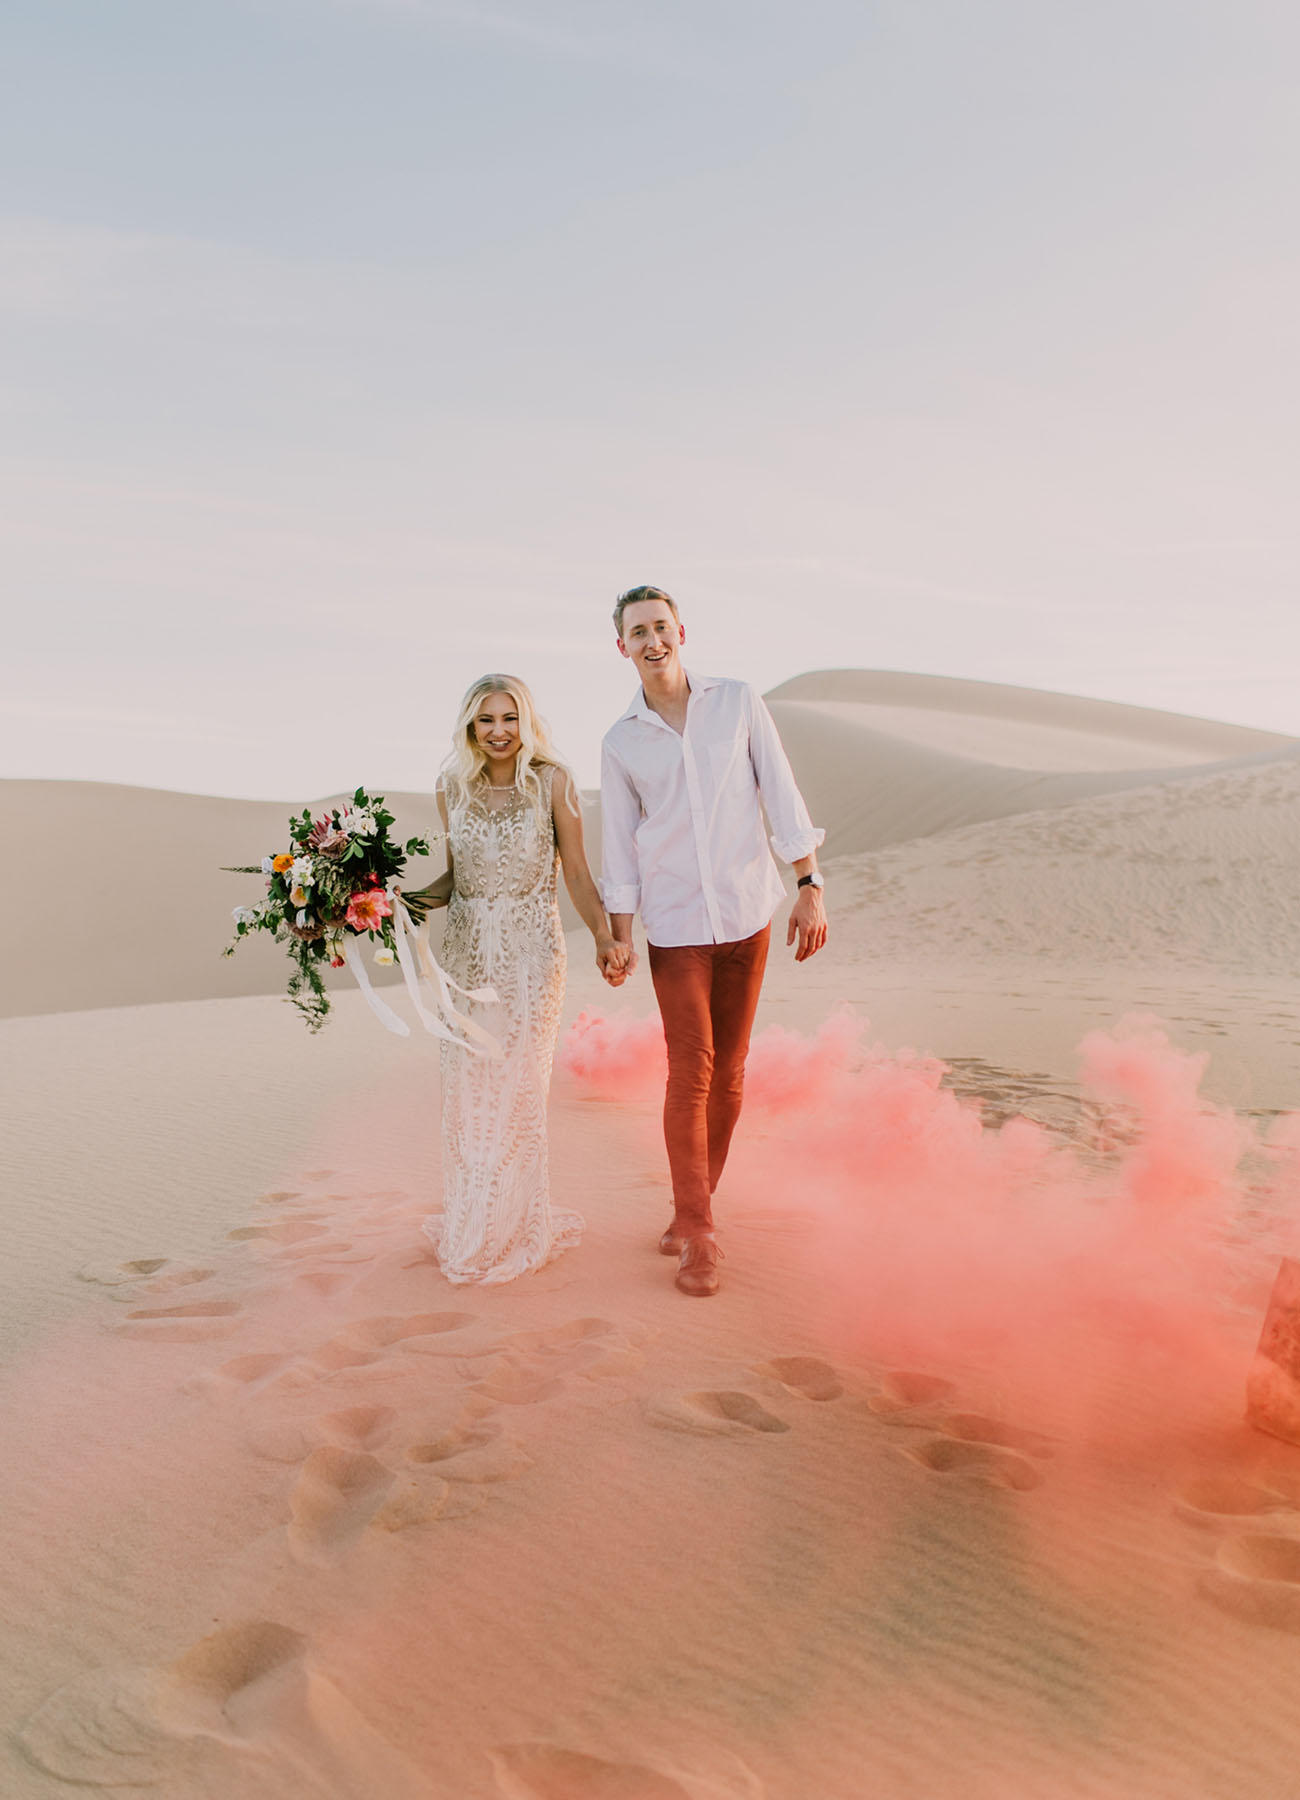 Coachella Festival Wedding in the desert